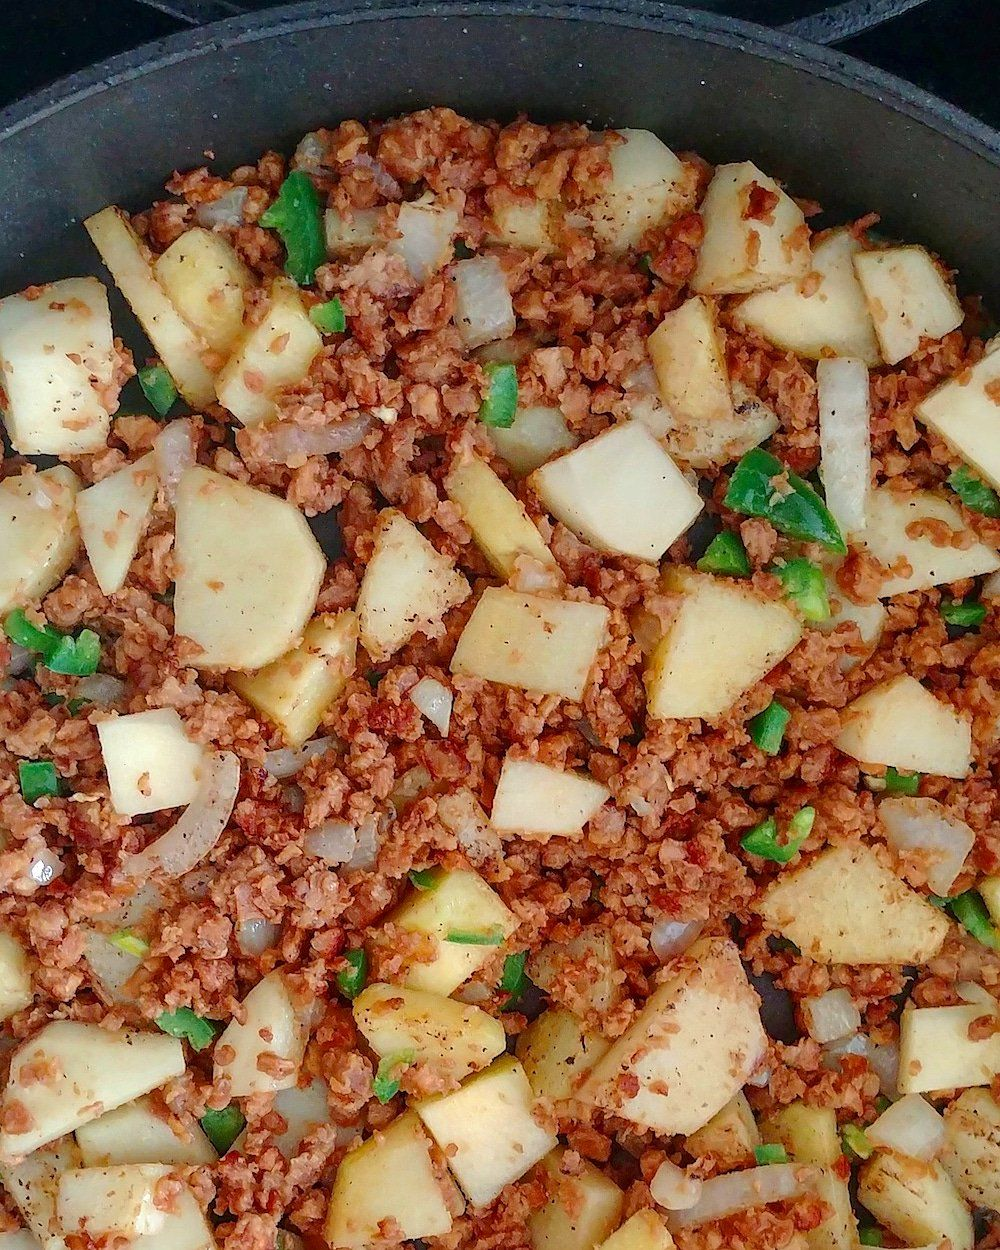 Vegan Mexican Recipes Picadillo Con Papas Ground Beef With Potatoes Ground Beef And Potatoes Vegan Mexican Recipes Gardein Recipes Vegan